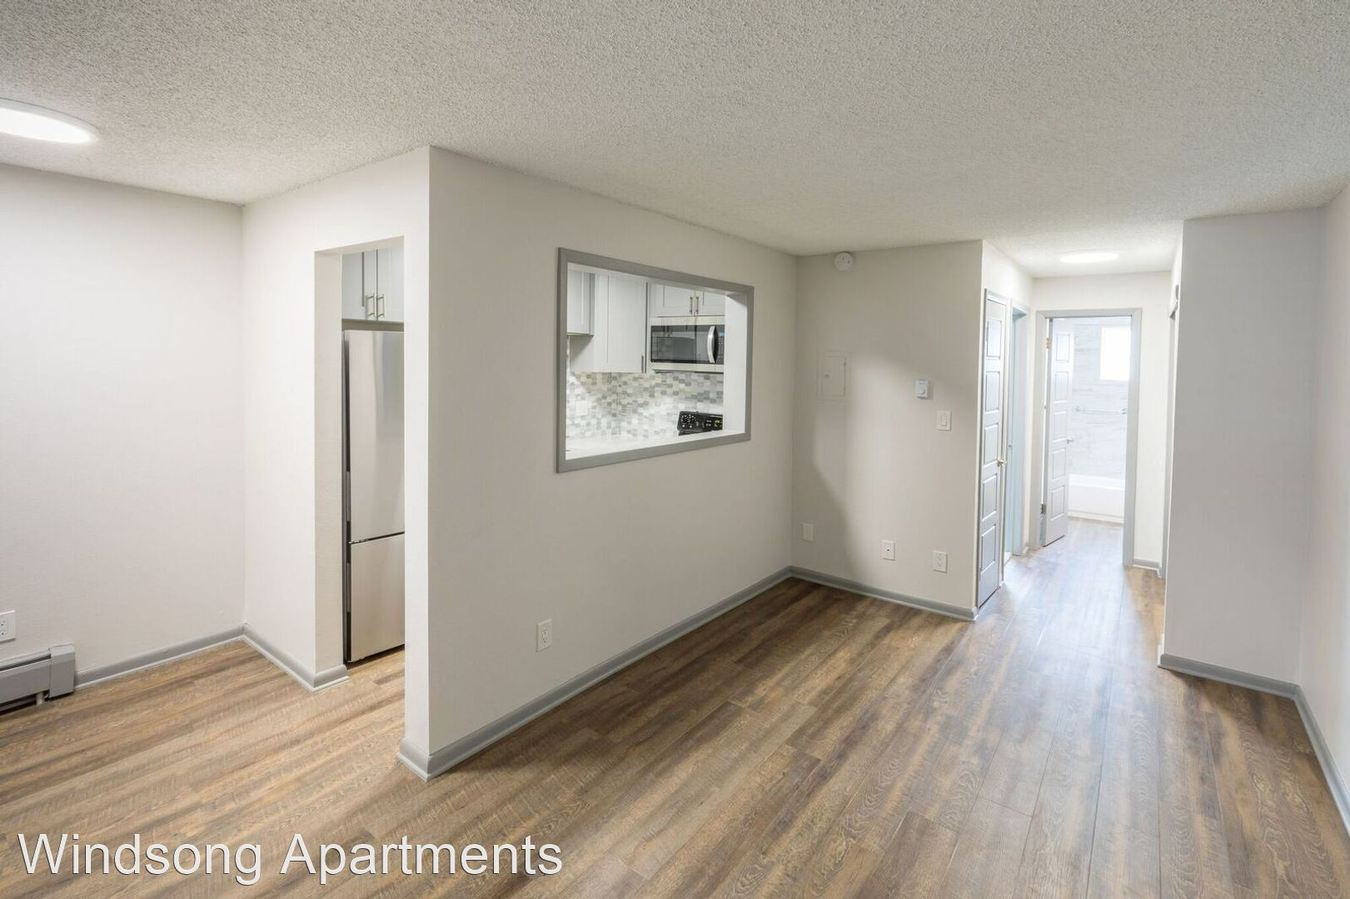 1 Bedroom 1 Bathroom Apartment for rent at Windsong Apartments in Englewood, CO